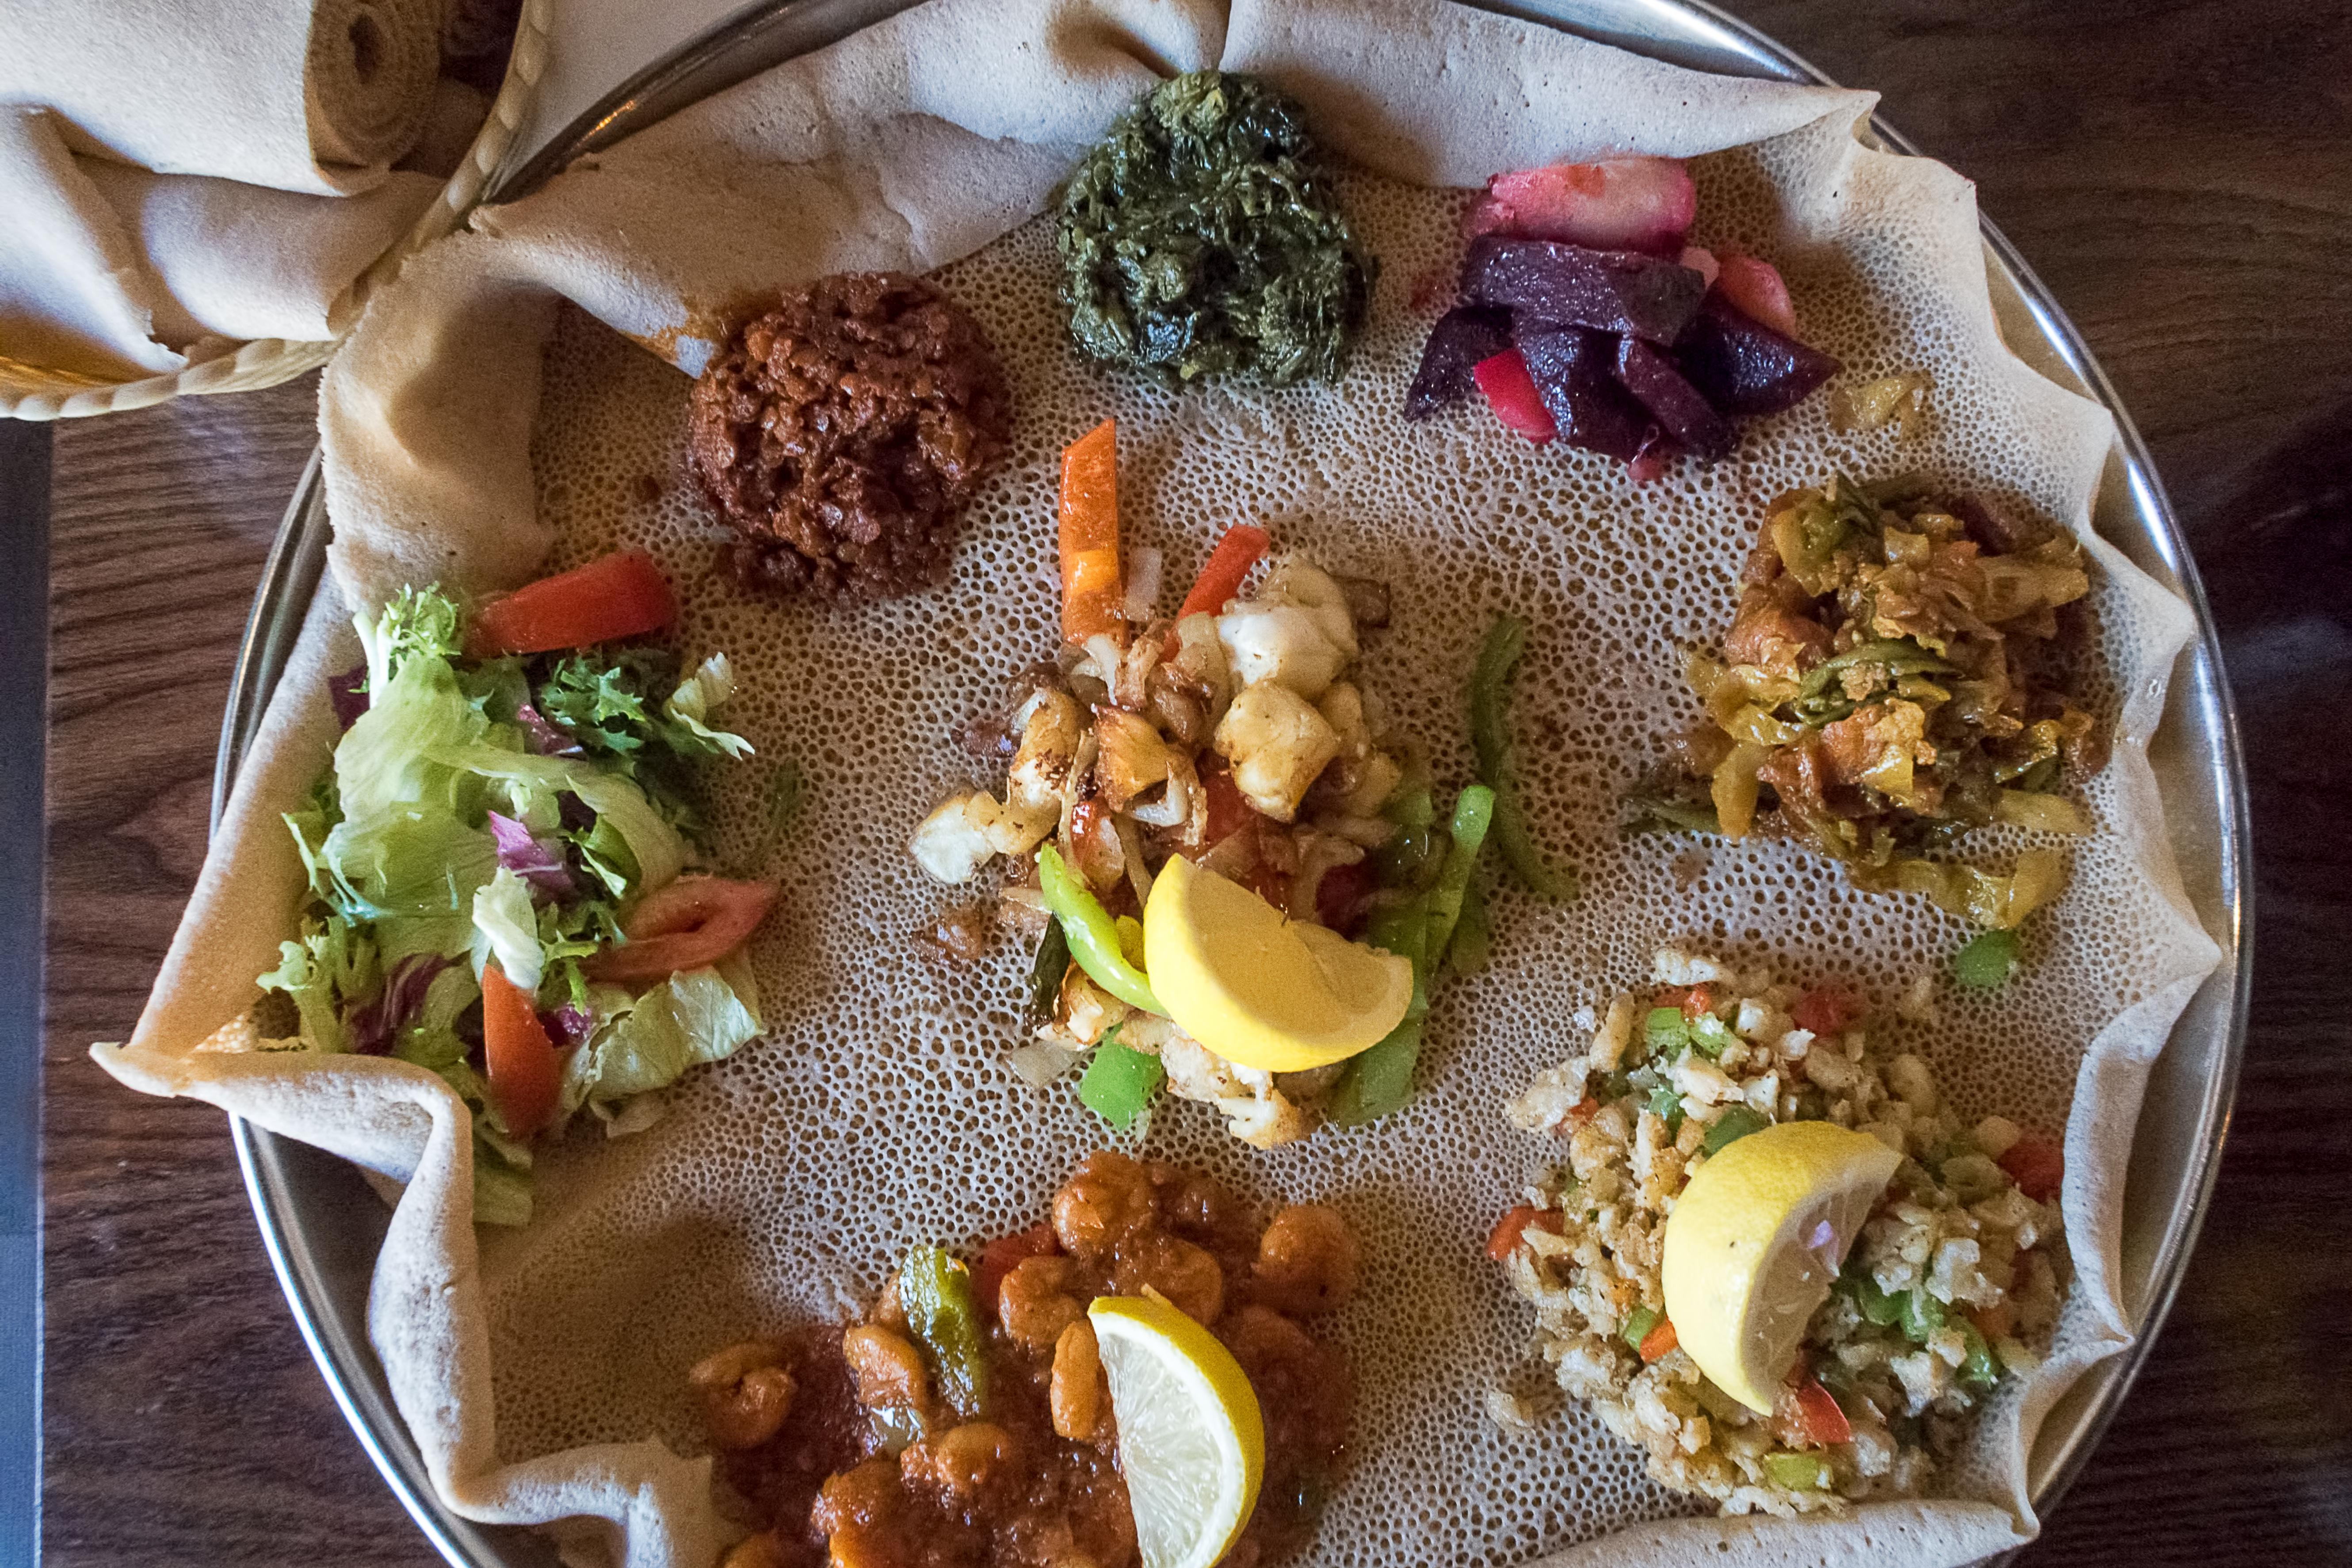 Ethiopian Food 101 with Gorsha